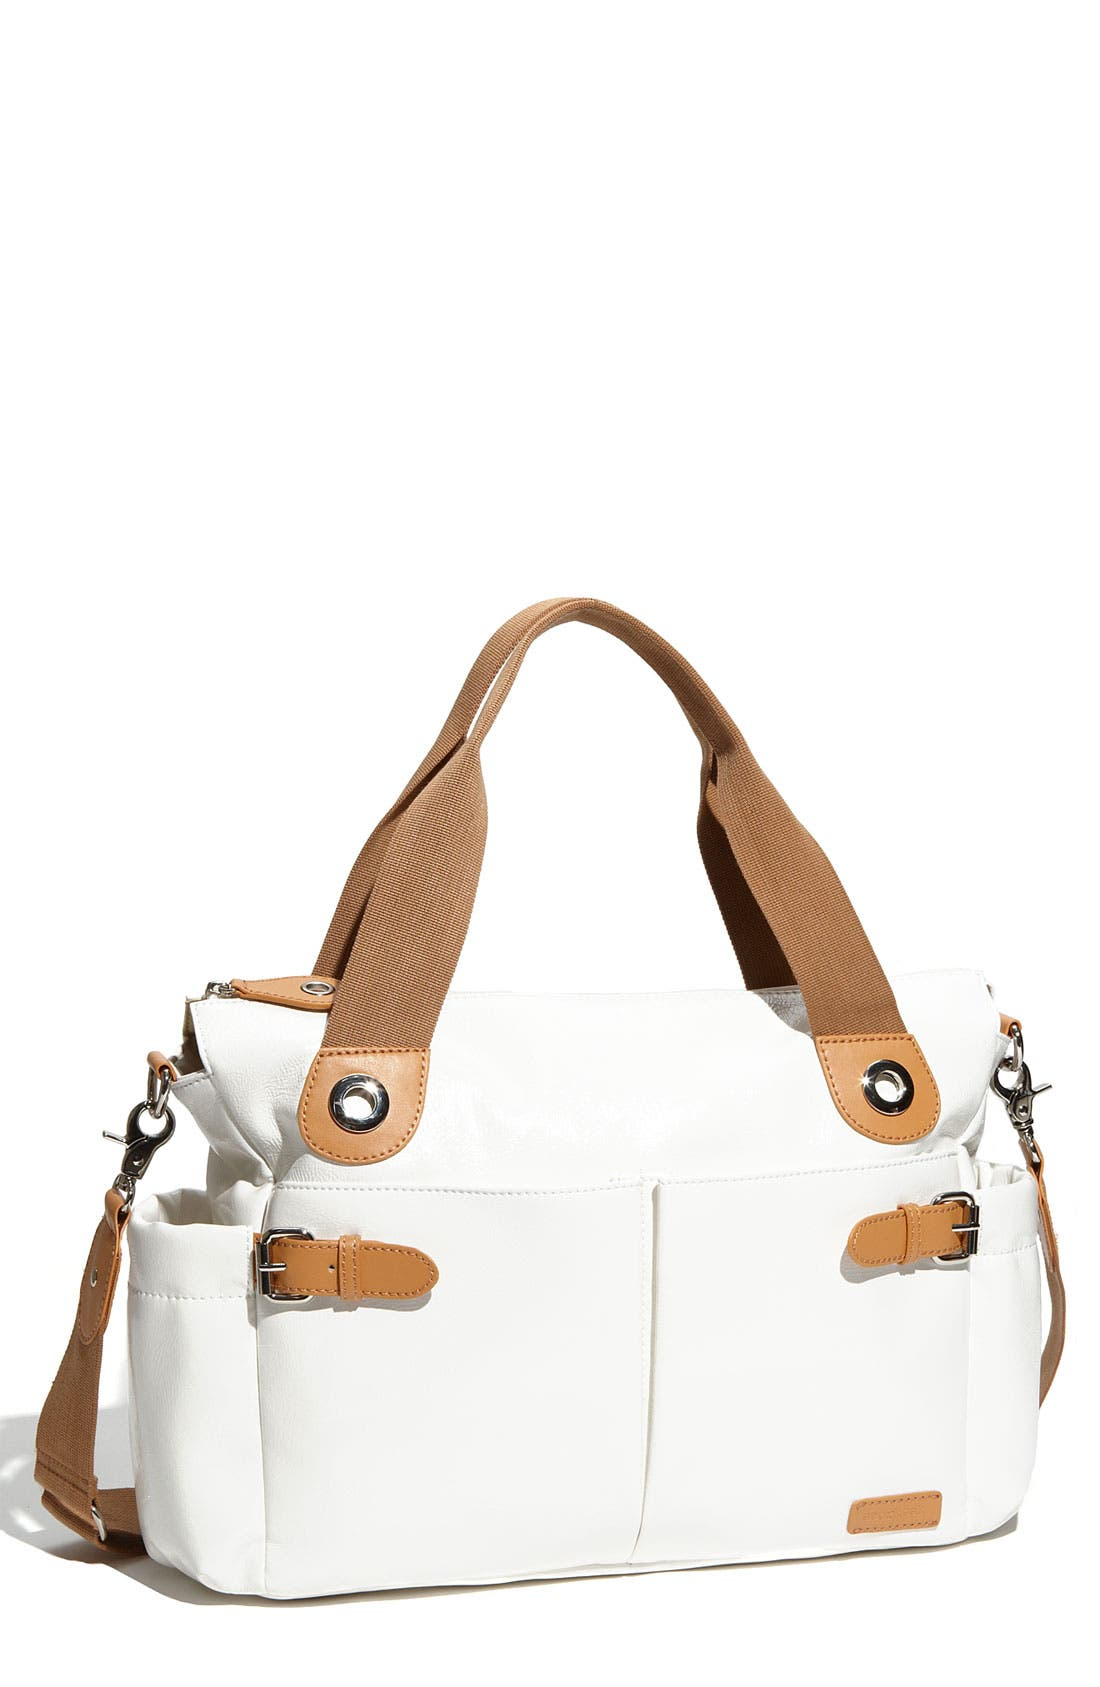 Alternate Image 1 Selected - Storksak 'Kate' Patent Diaper Bag